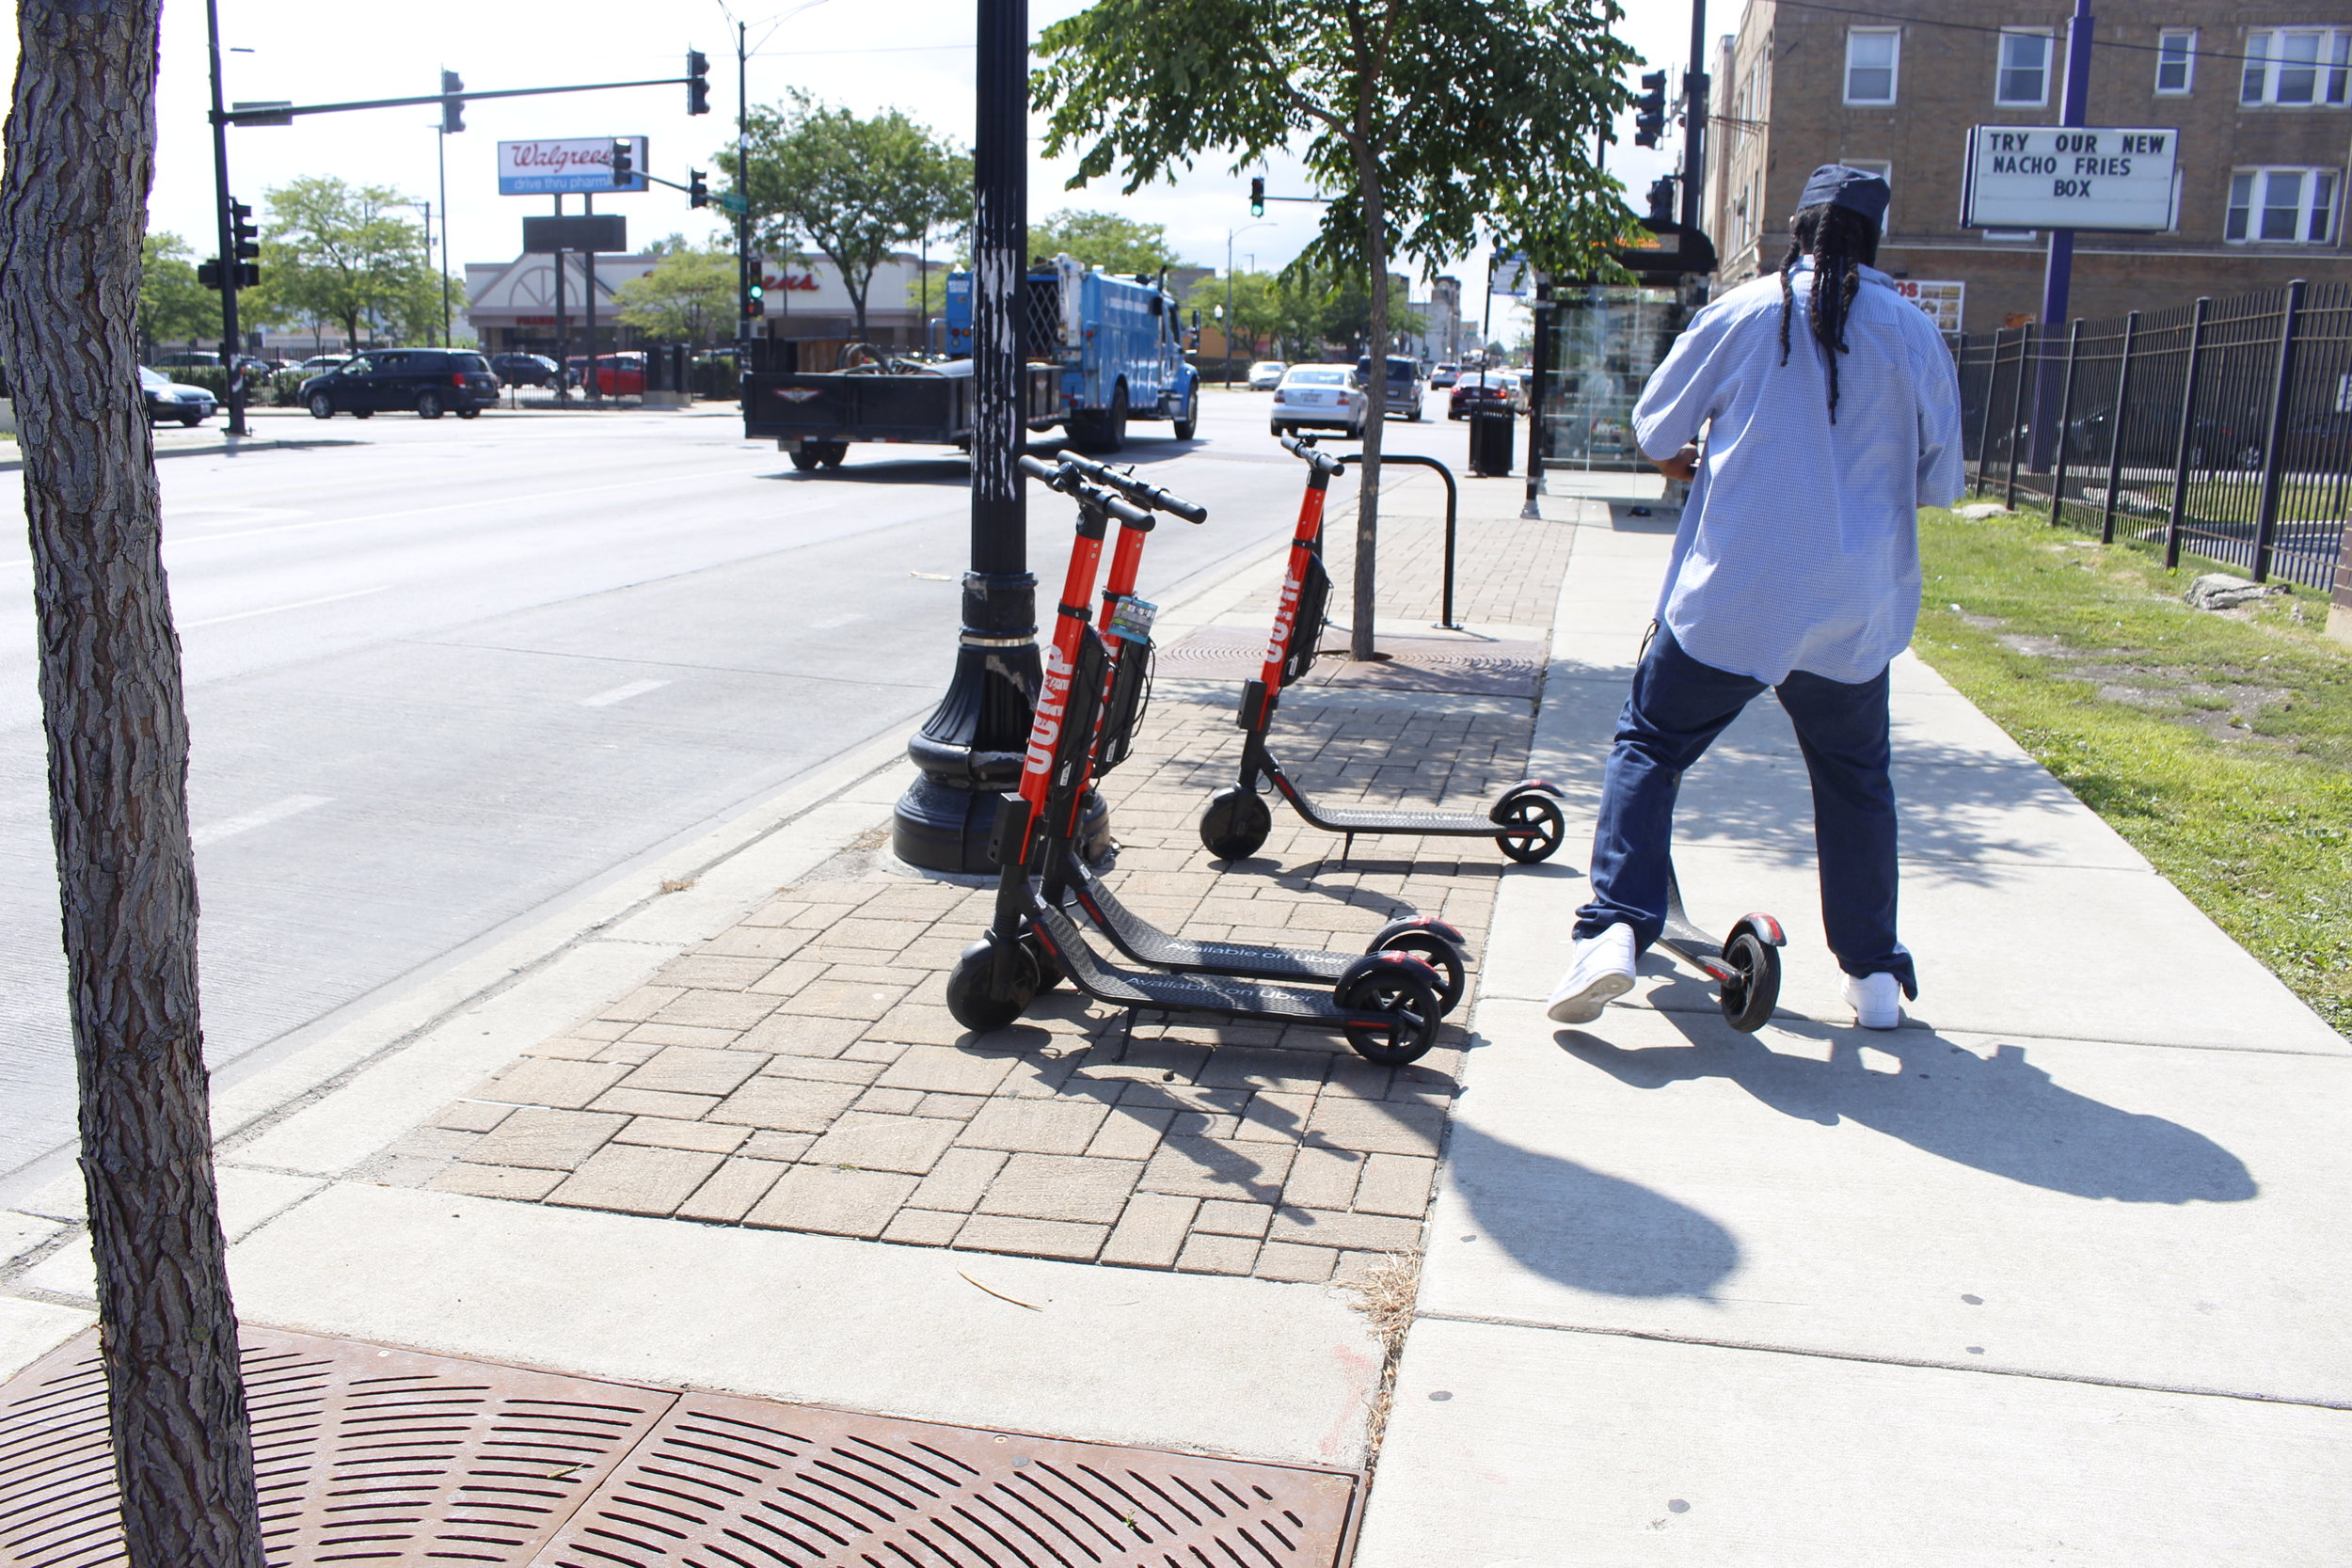 A North Lawndale local taking off on an E-Scooter. Photo by Clariza Adao